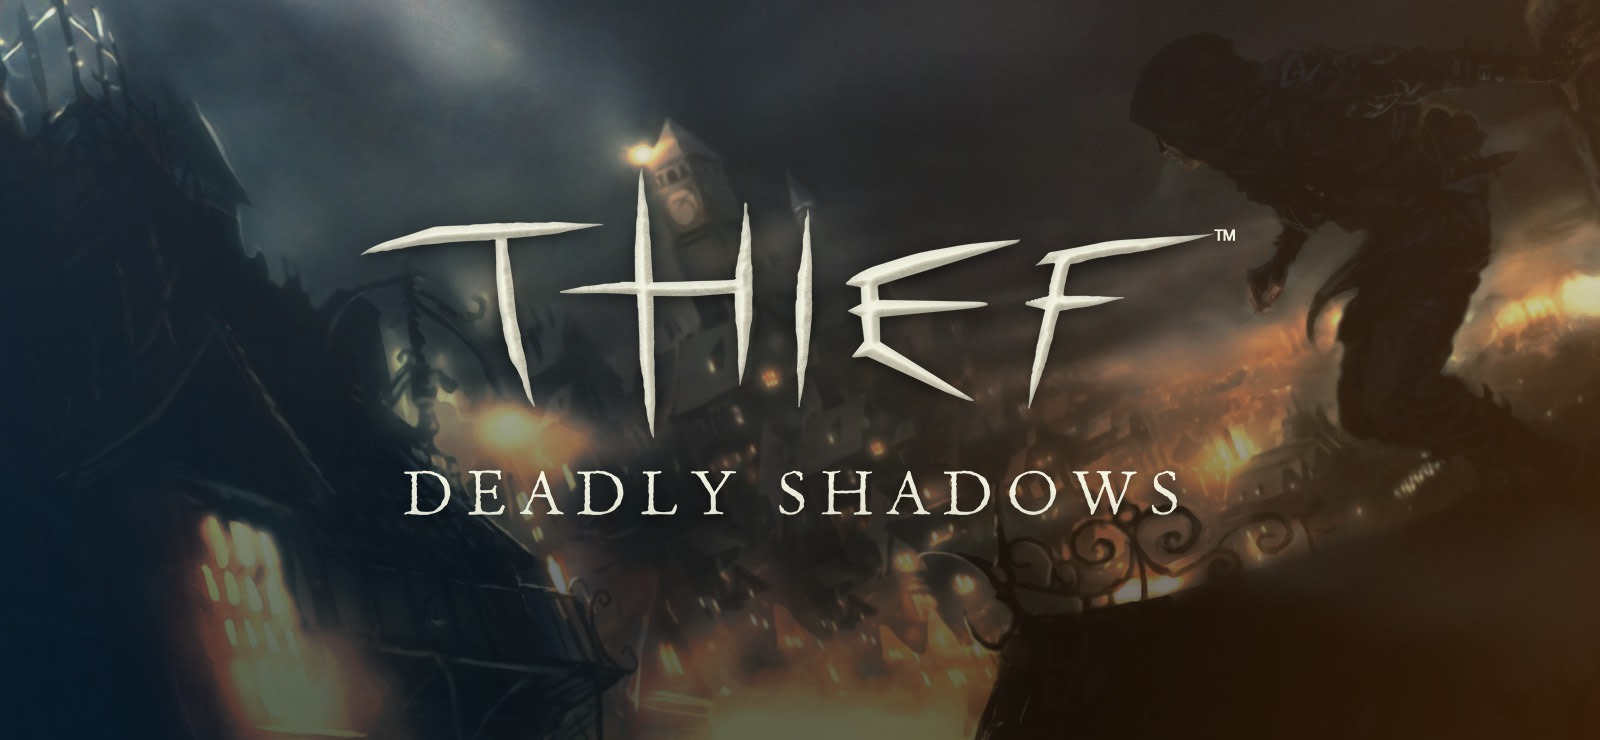 Thief 3: Deadly Shadows varies-with-device